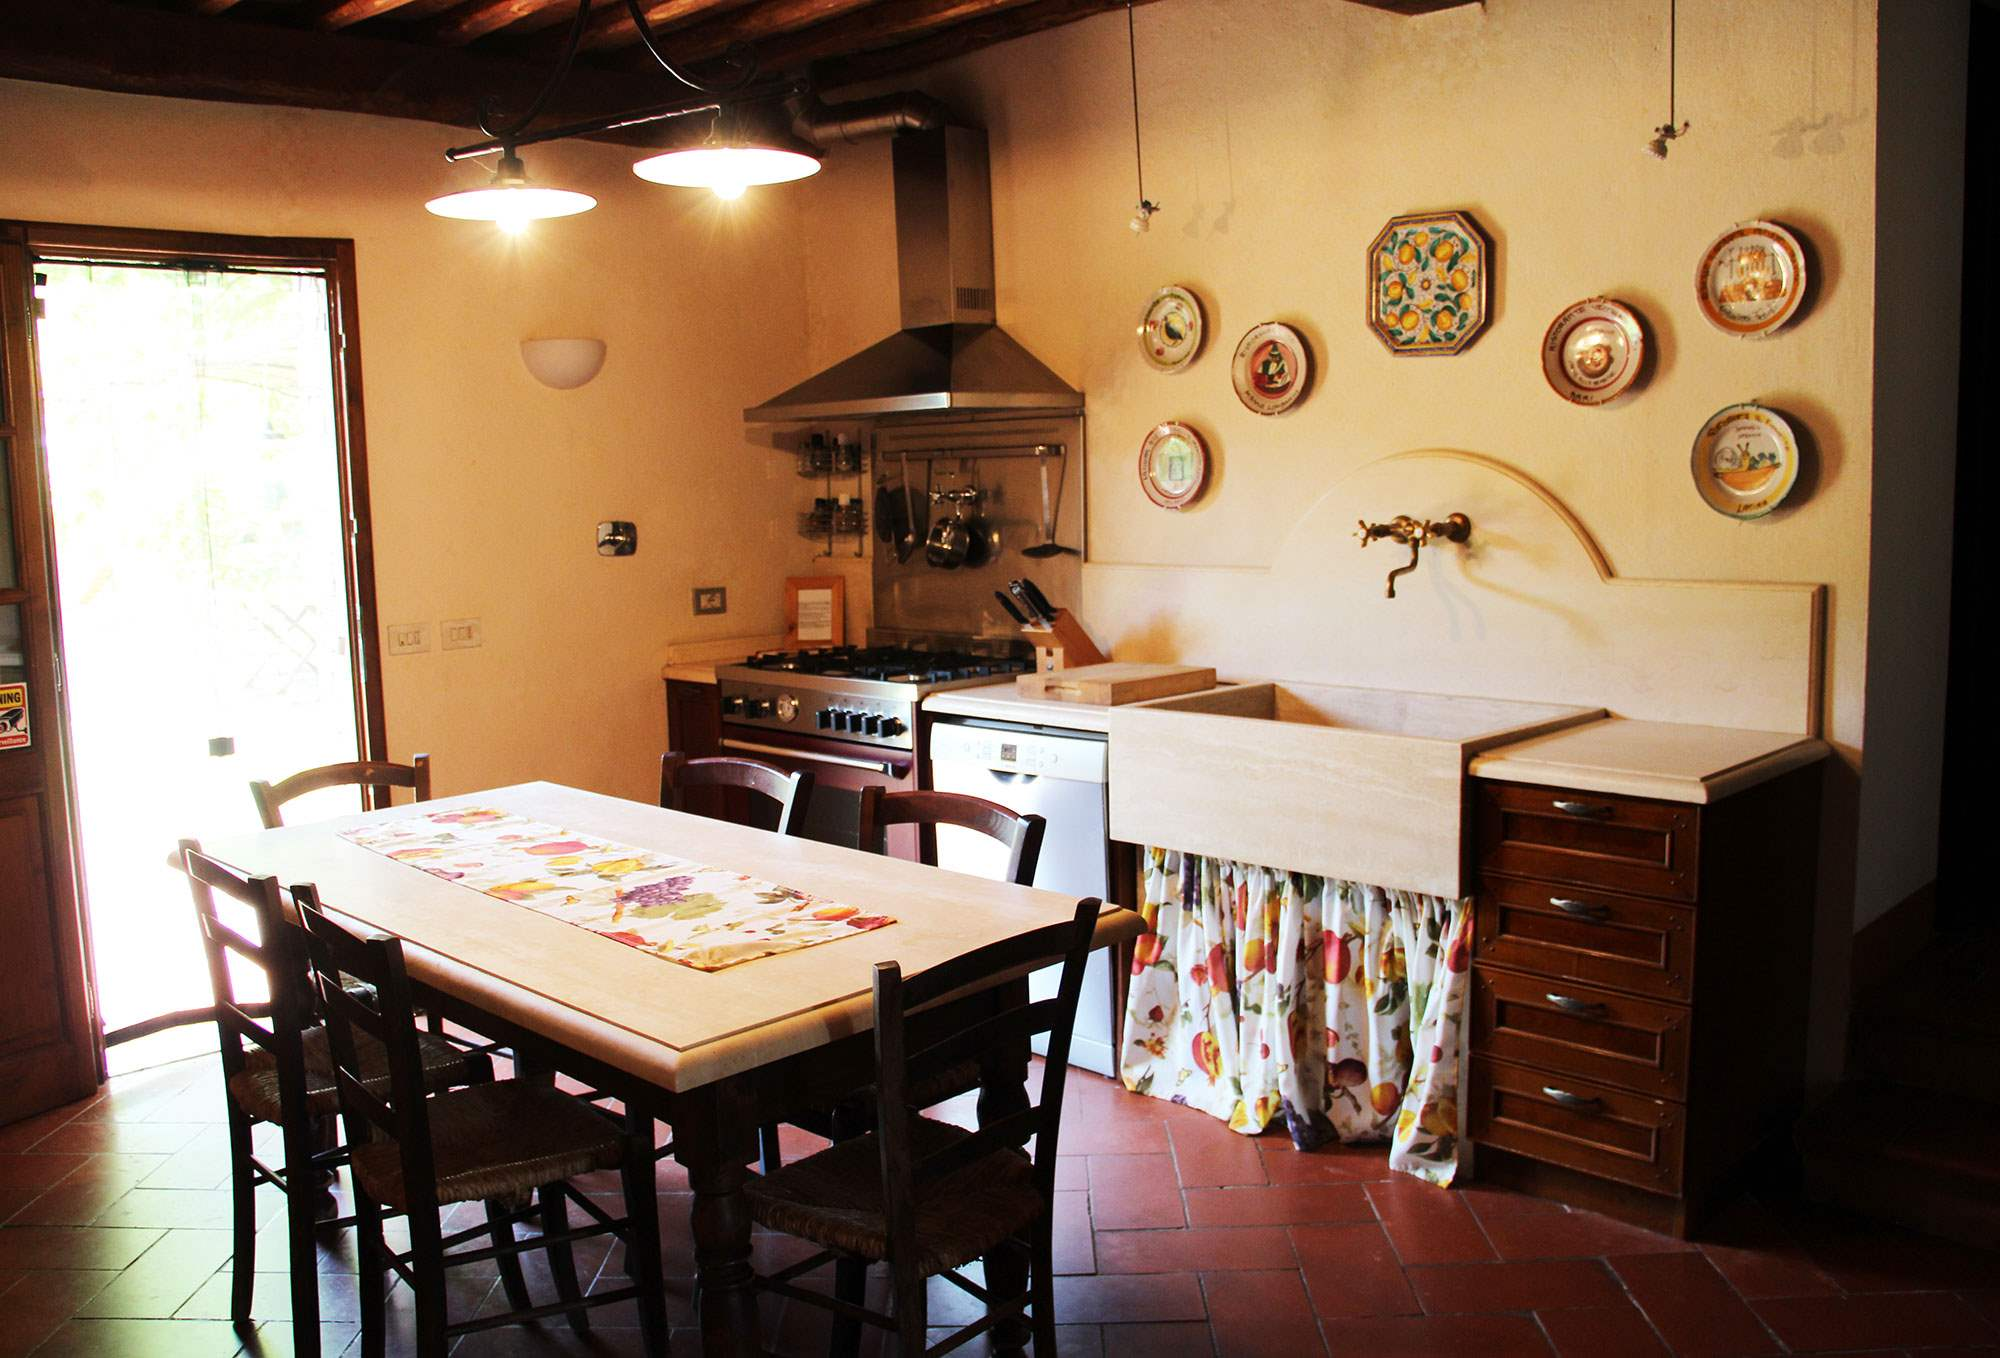 Villa Felicita, Main house and apartment, 10 persons rate, 5 bedroom villa in Chianti & Countryside, Tuscany Photo #9